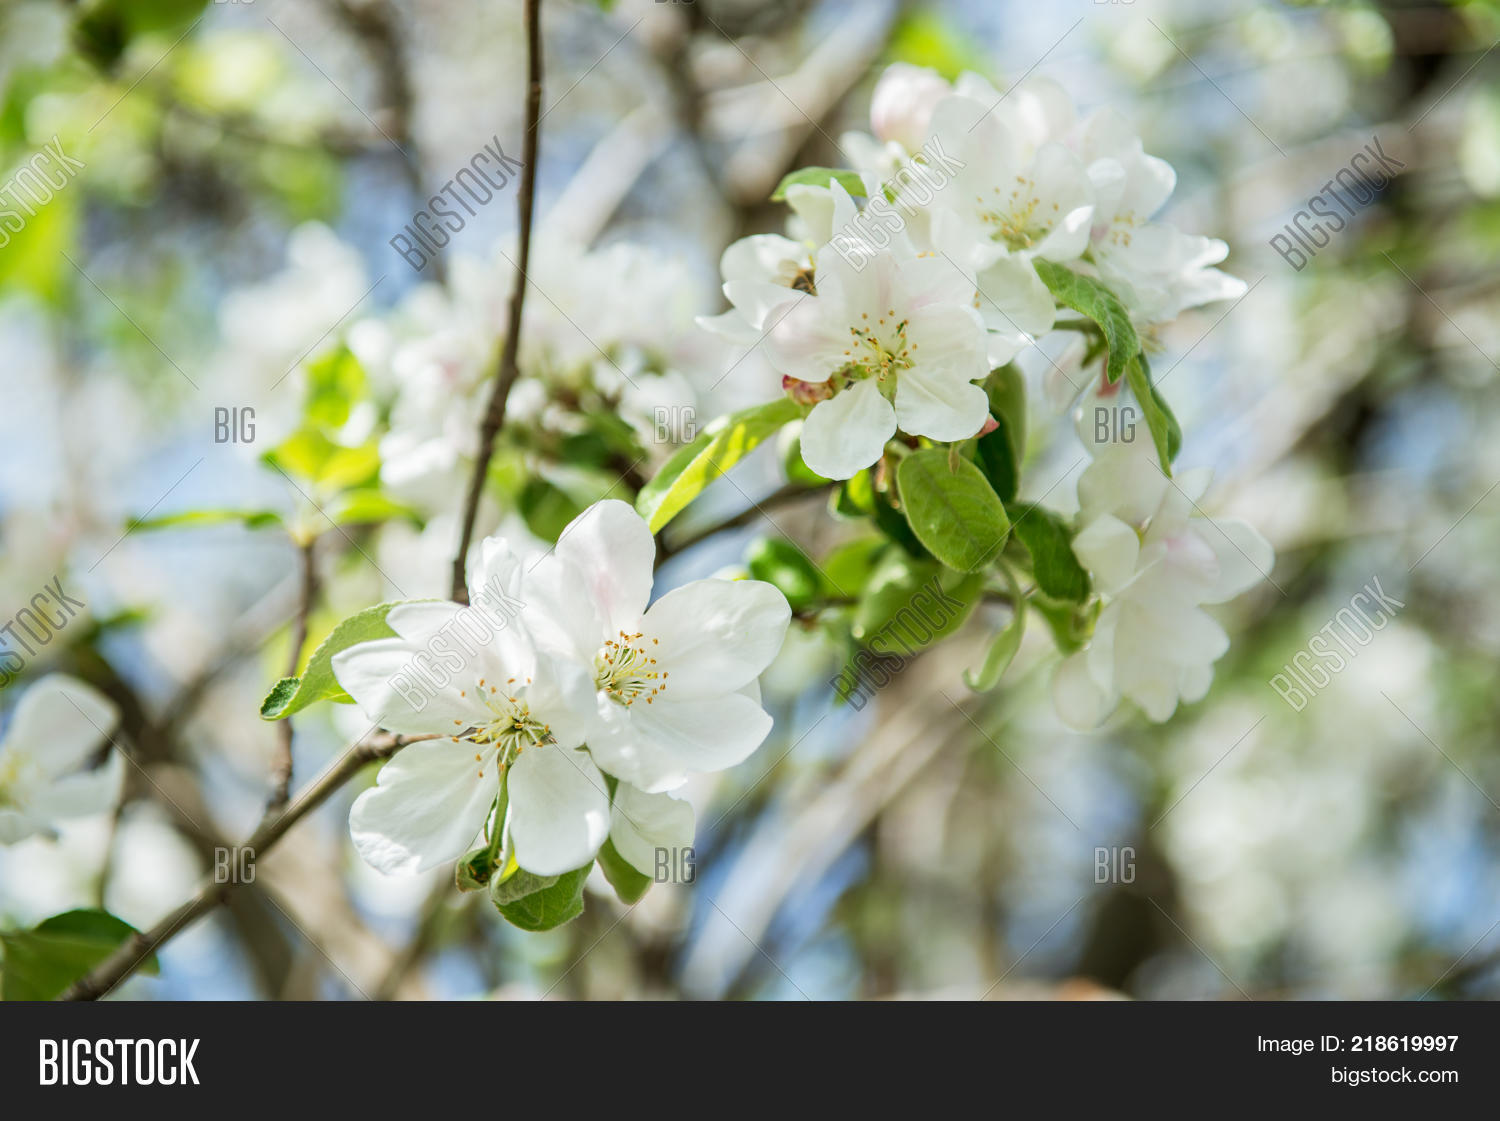 Apple Blossoms Image Photo Free Trial Bigstock